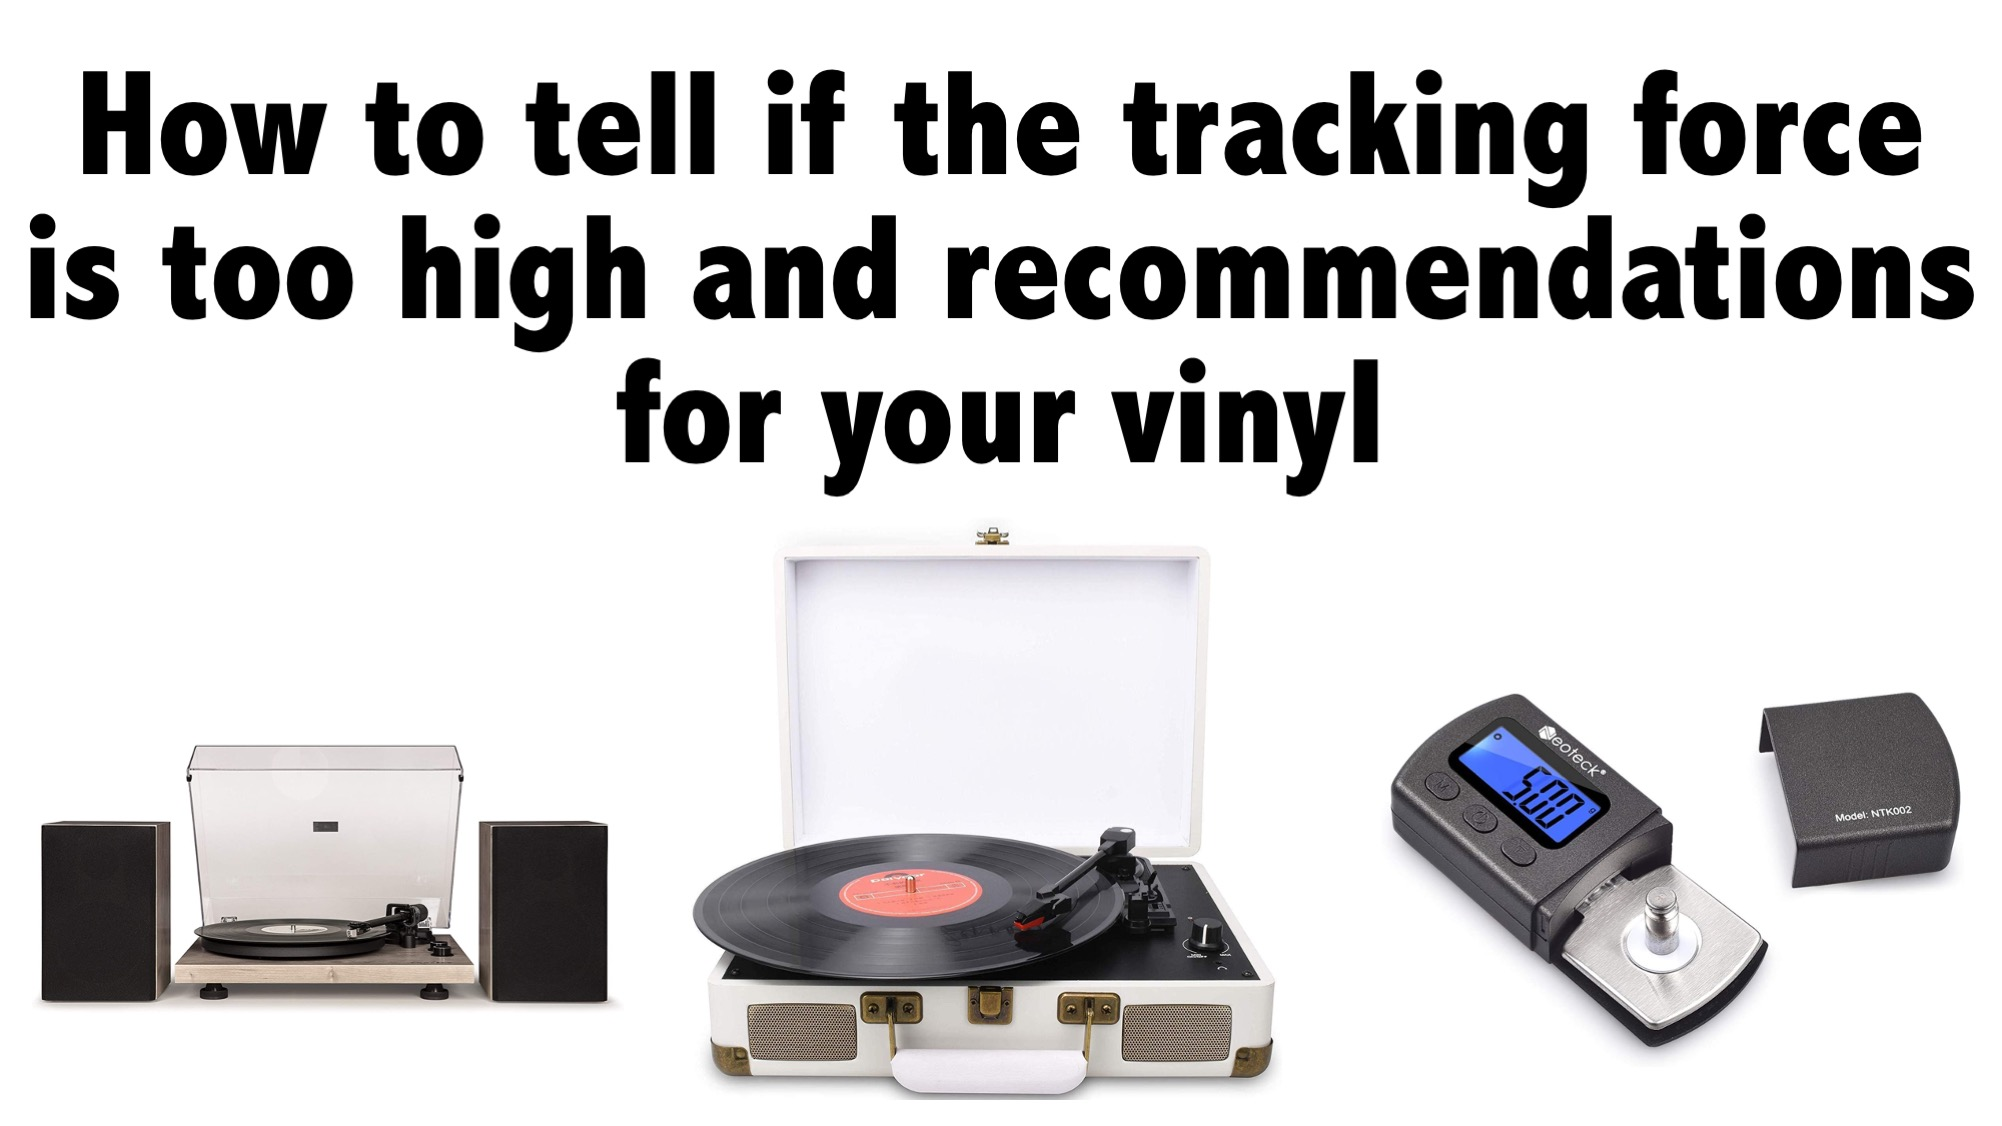 How to tell if the tracking force is too high and recommendations for your vinyl